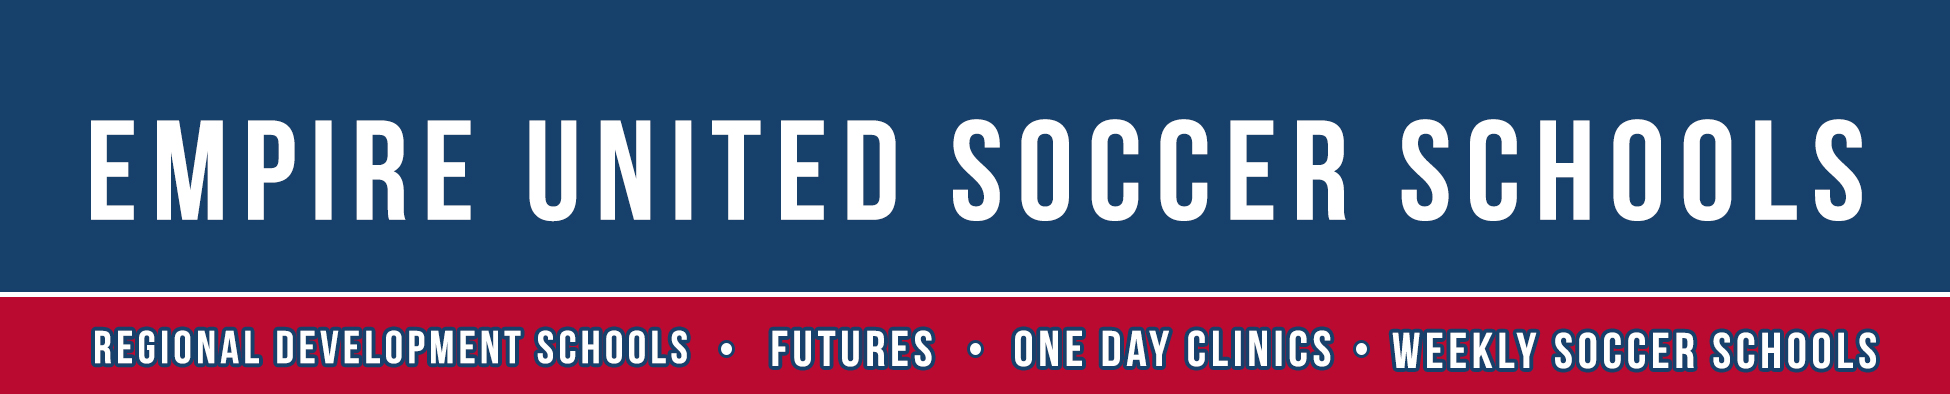 Empire United Soccer Schools